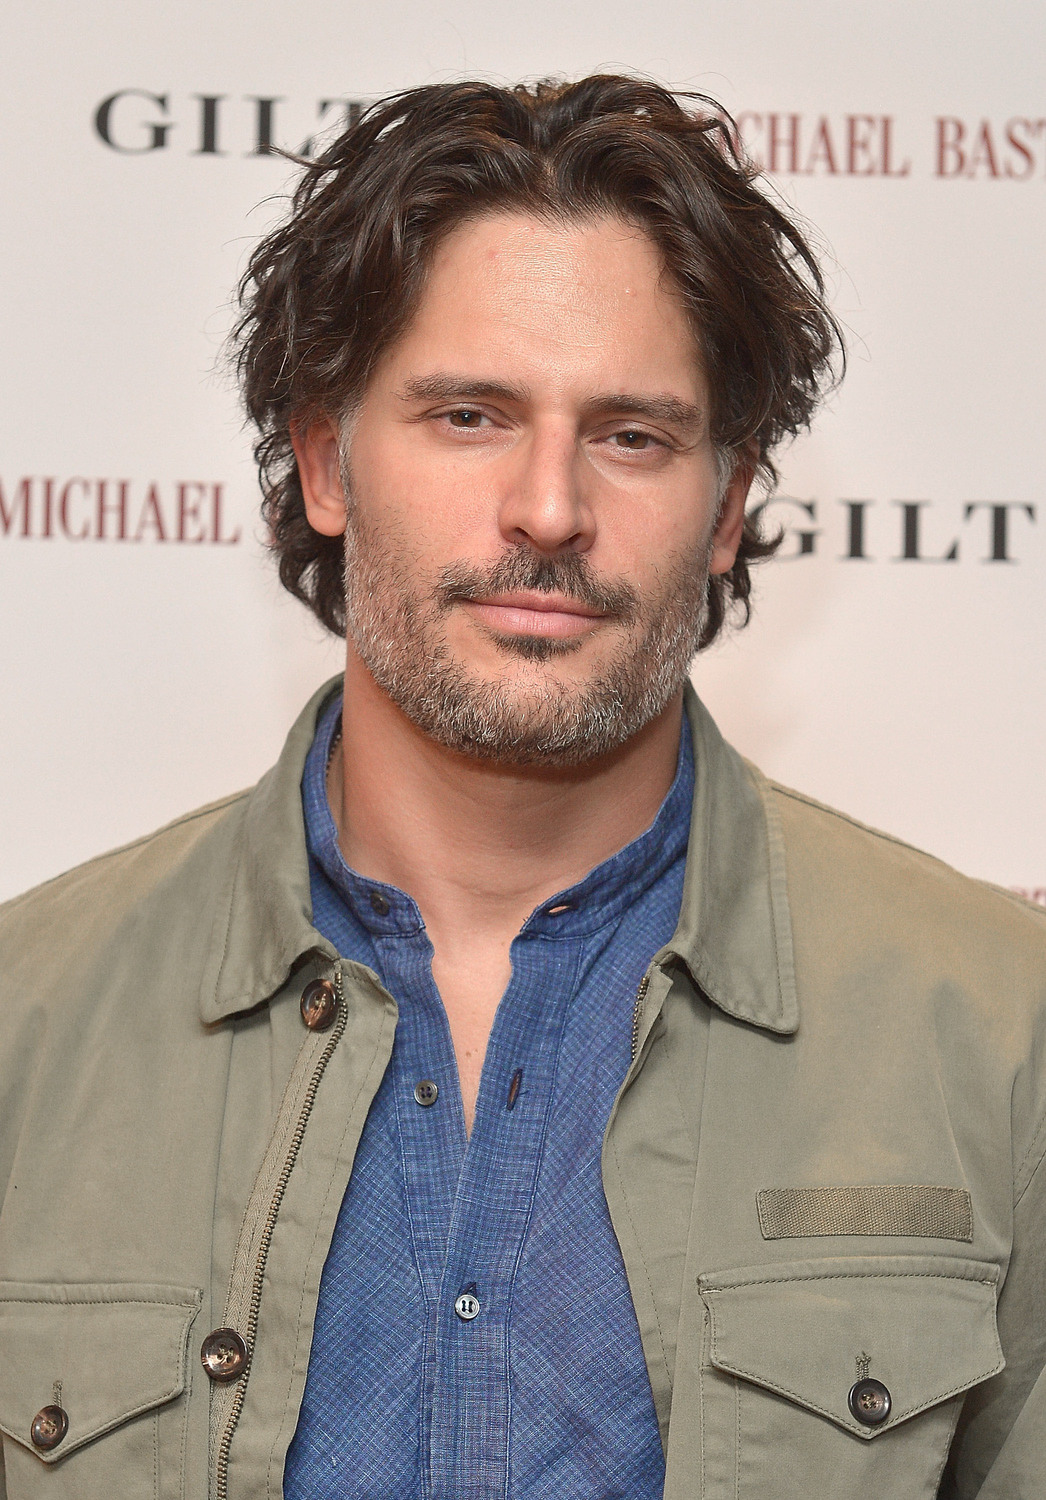 Joe Manganiello has been cast as a series regular in Scream Queens, a new comedy-horror anthology series from Ryan Murphy, Brad Falchuk, Ian Brennan and Dante Di Loreto.